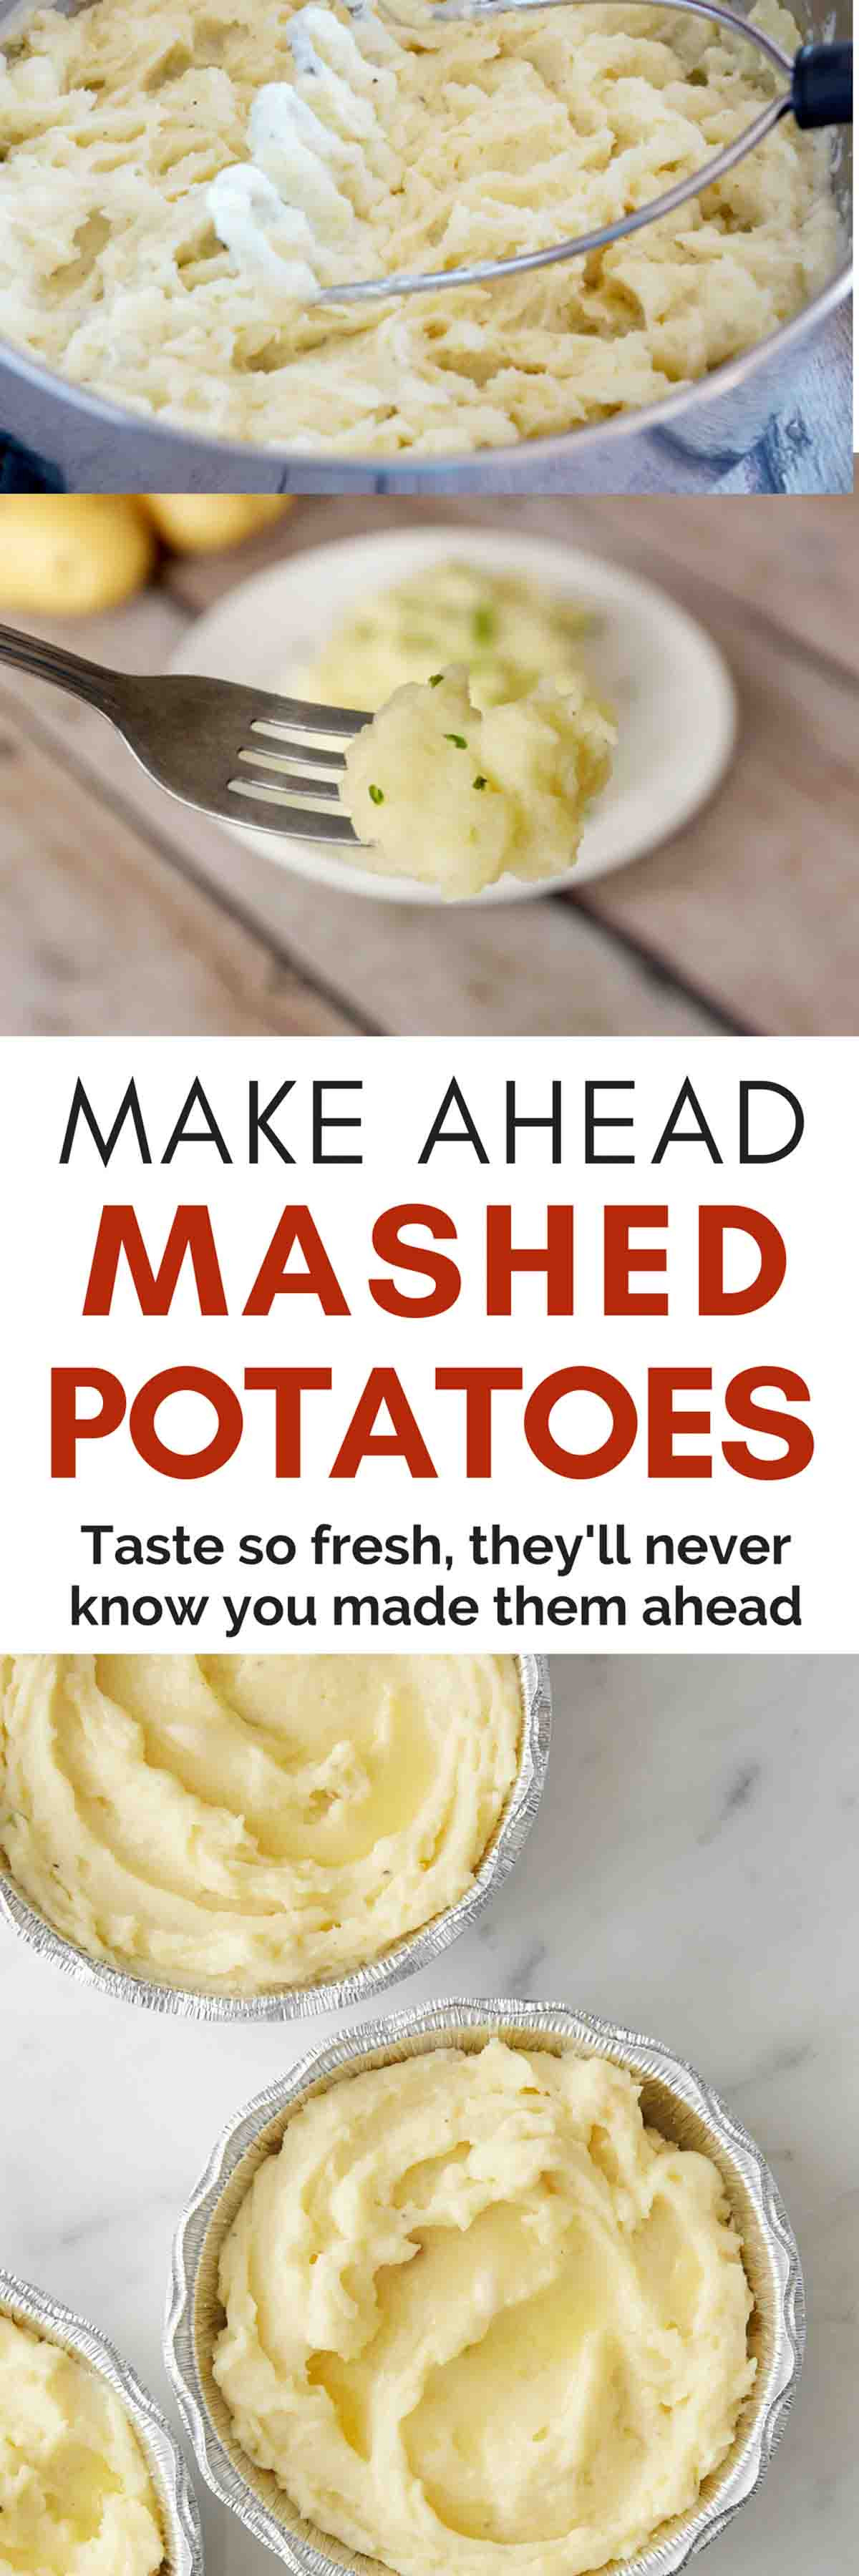 Do Ahead Mashed Potatoes  Make Ahead Mashed Potatoes That Actually Taste Freshly Made